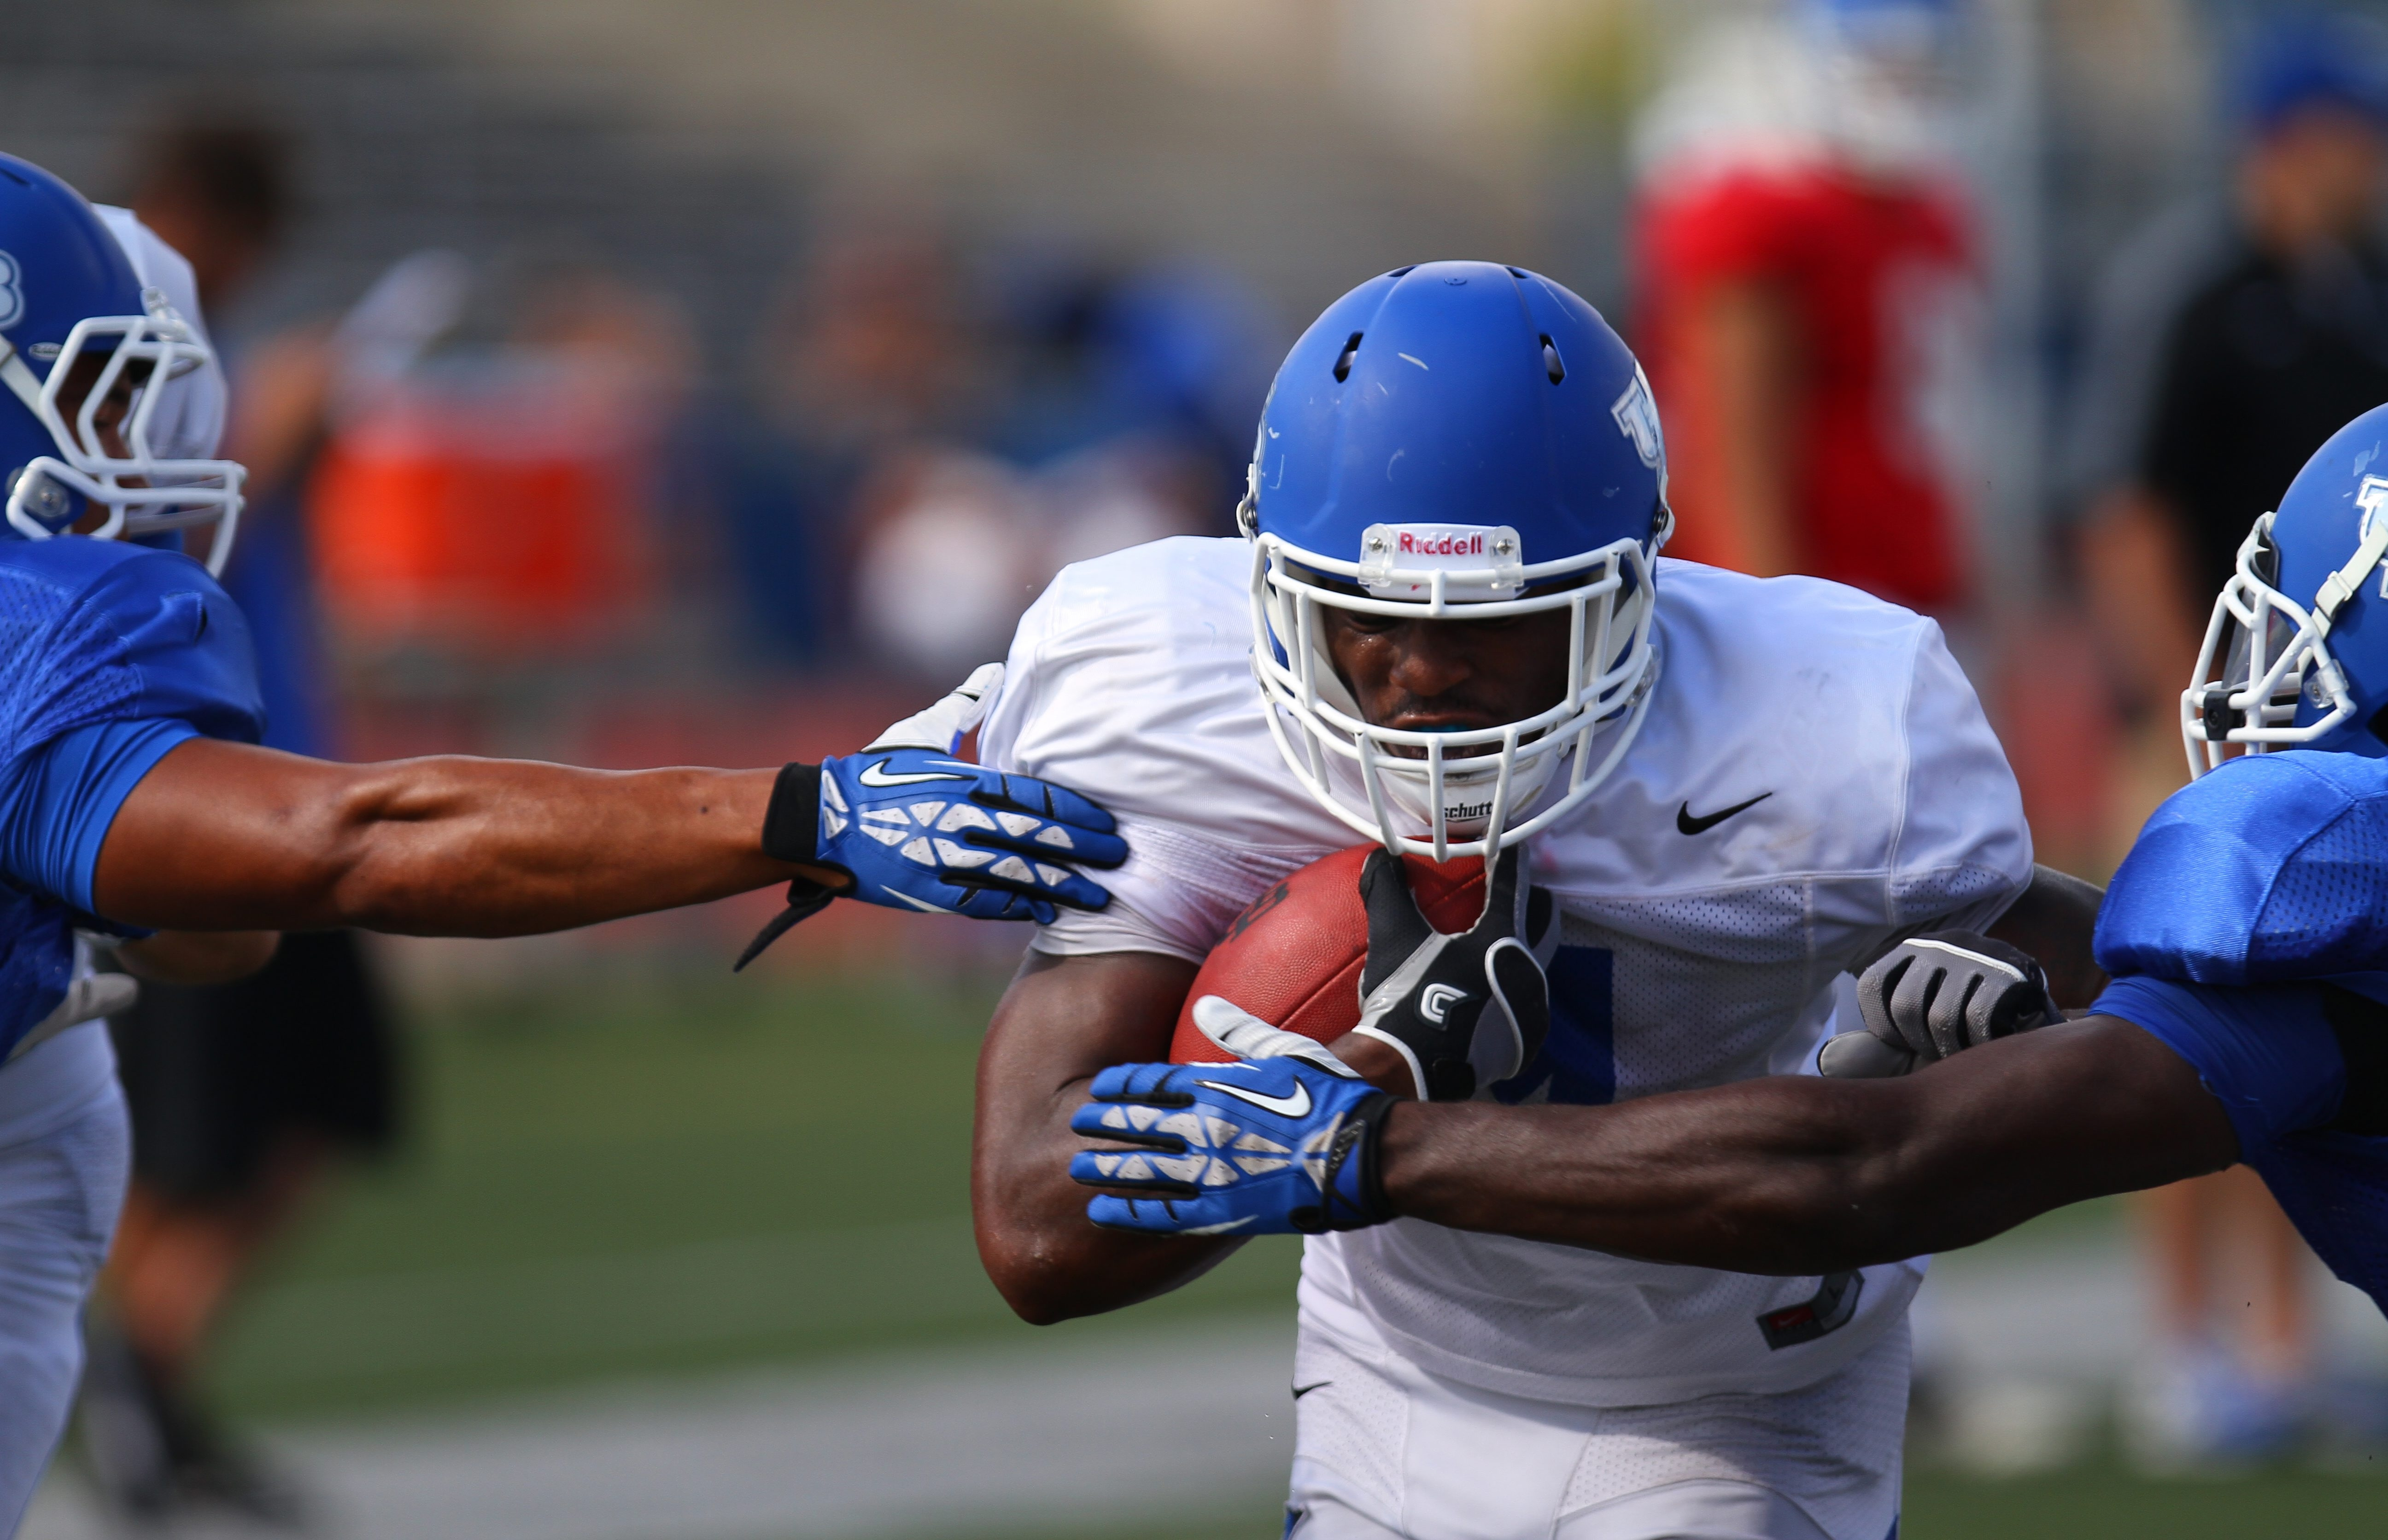 UB running back Anthone Taylor caught the eye of Jeff Quinn when he coached at Cincinnati.